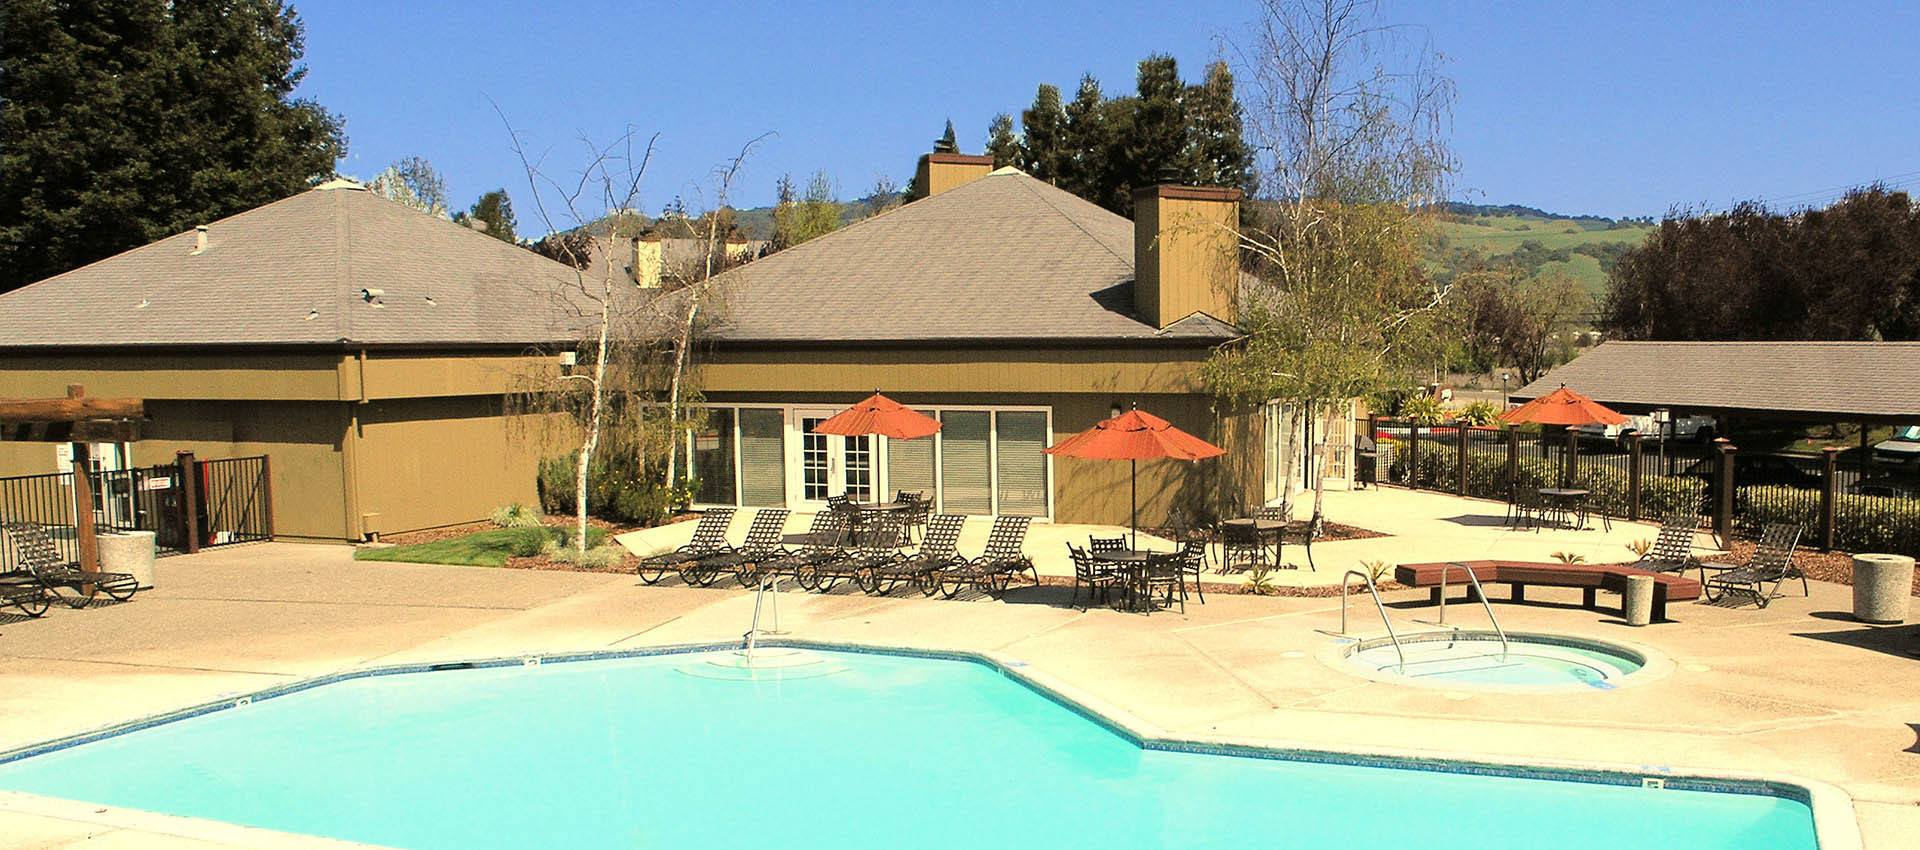 Outdoor poolat Park Ridge Apartment Homes in Rohnert Park, CA